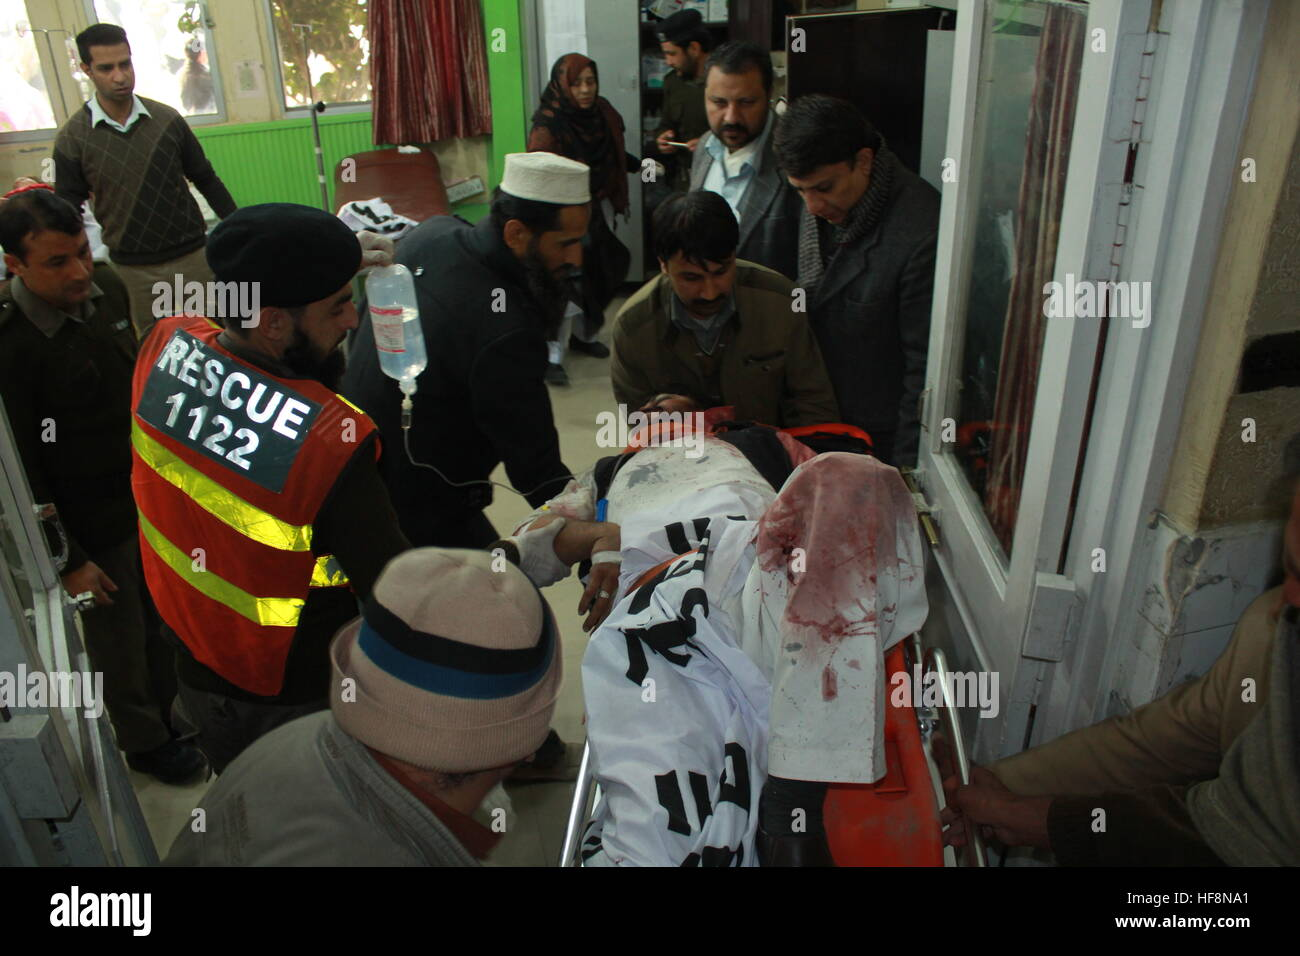 PAKISTAN Dec30 - Local people and rescue worker Shifting Injured passenger in hospital for treatment. Stock Photo